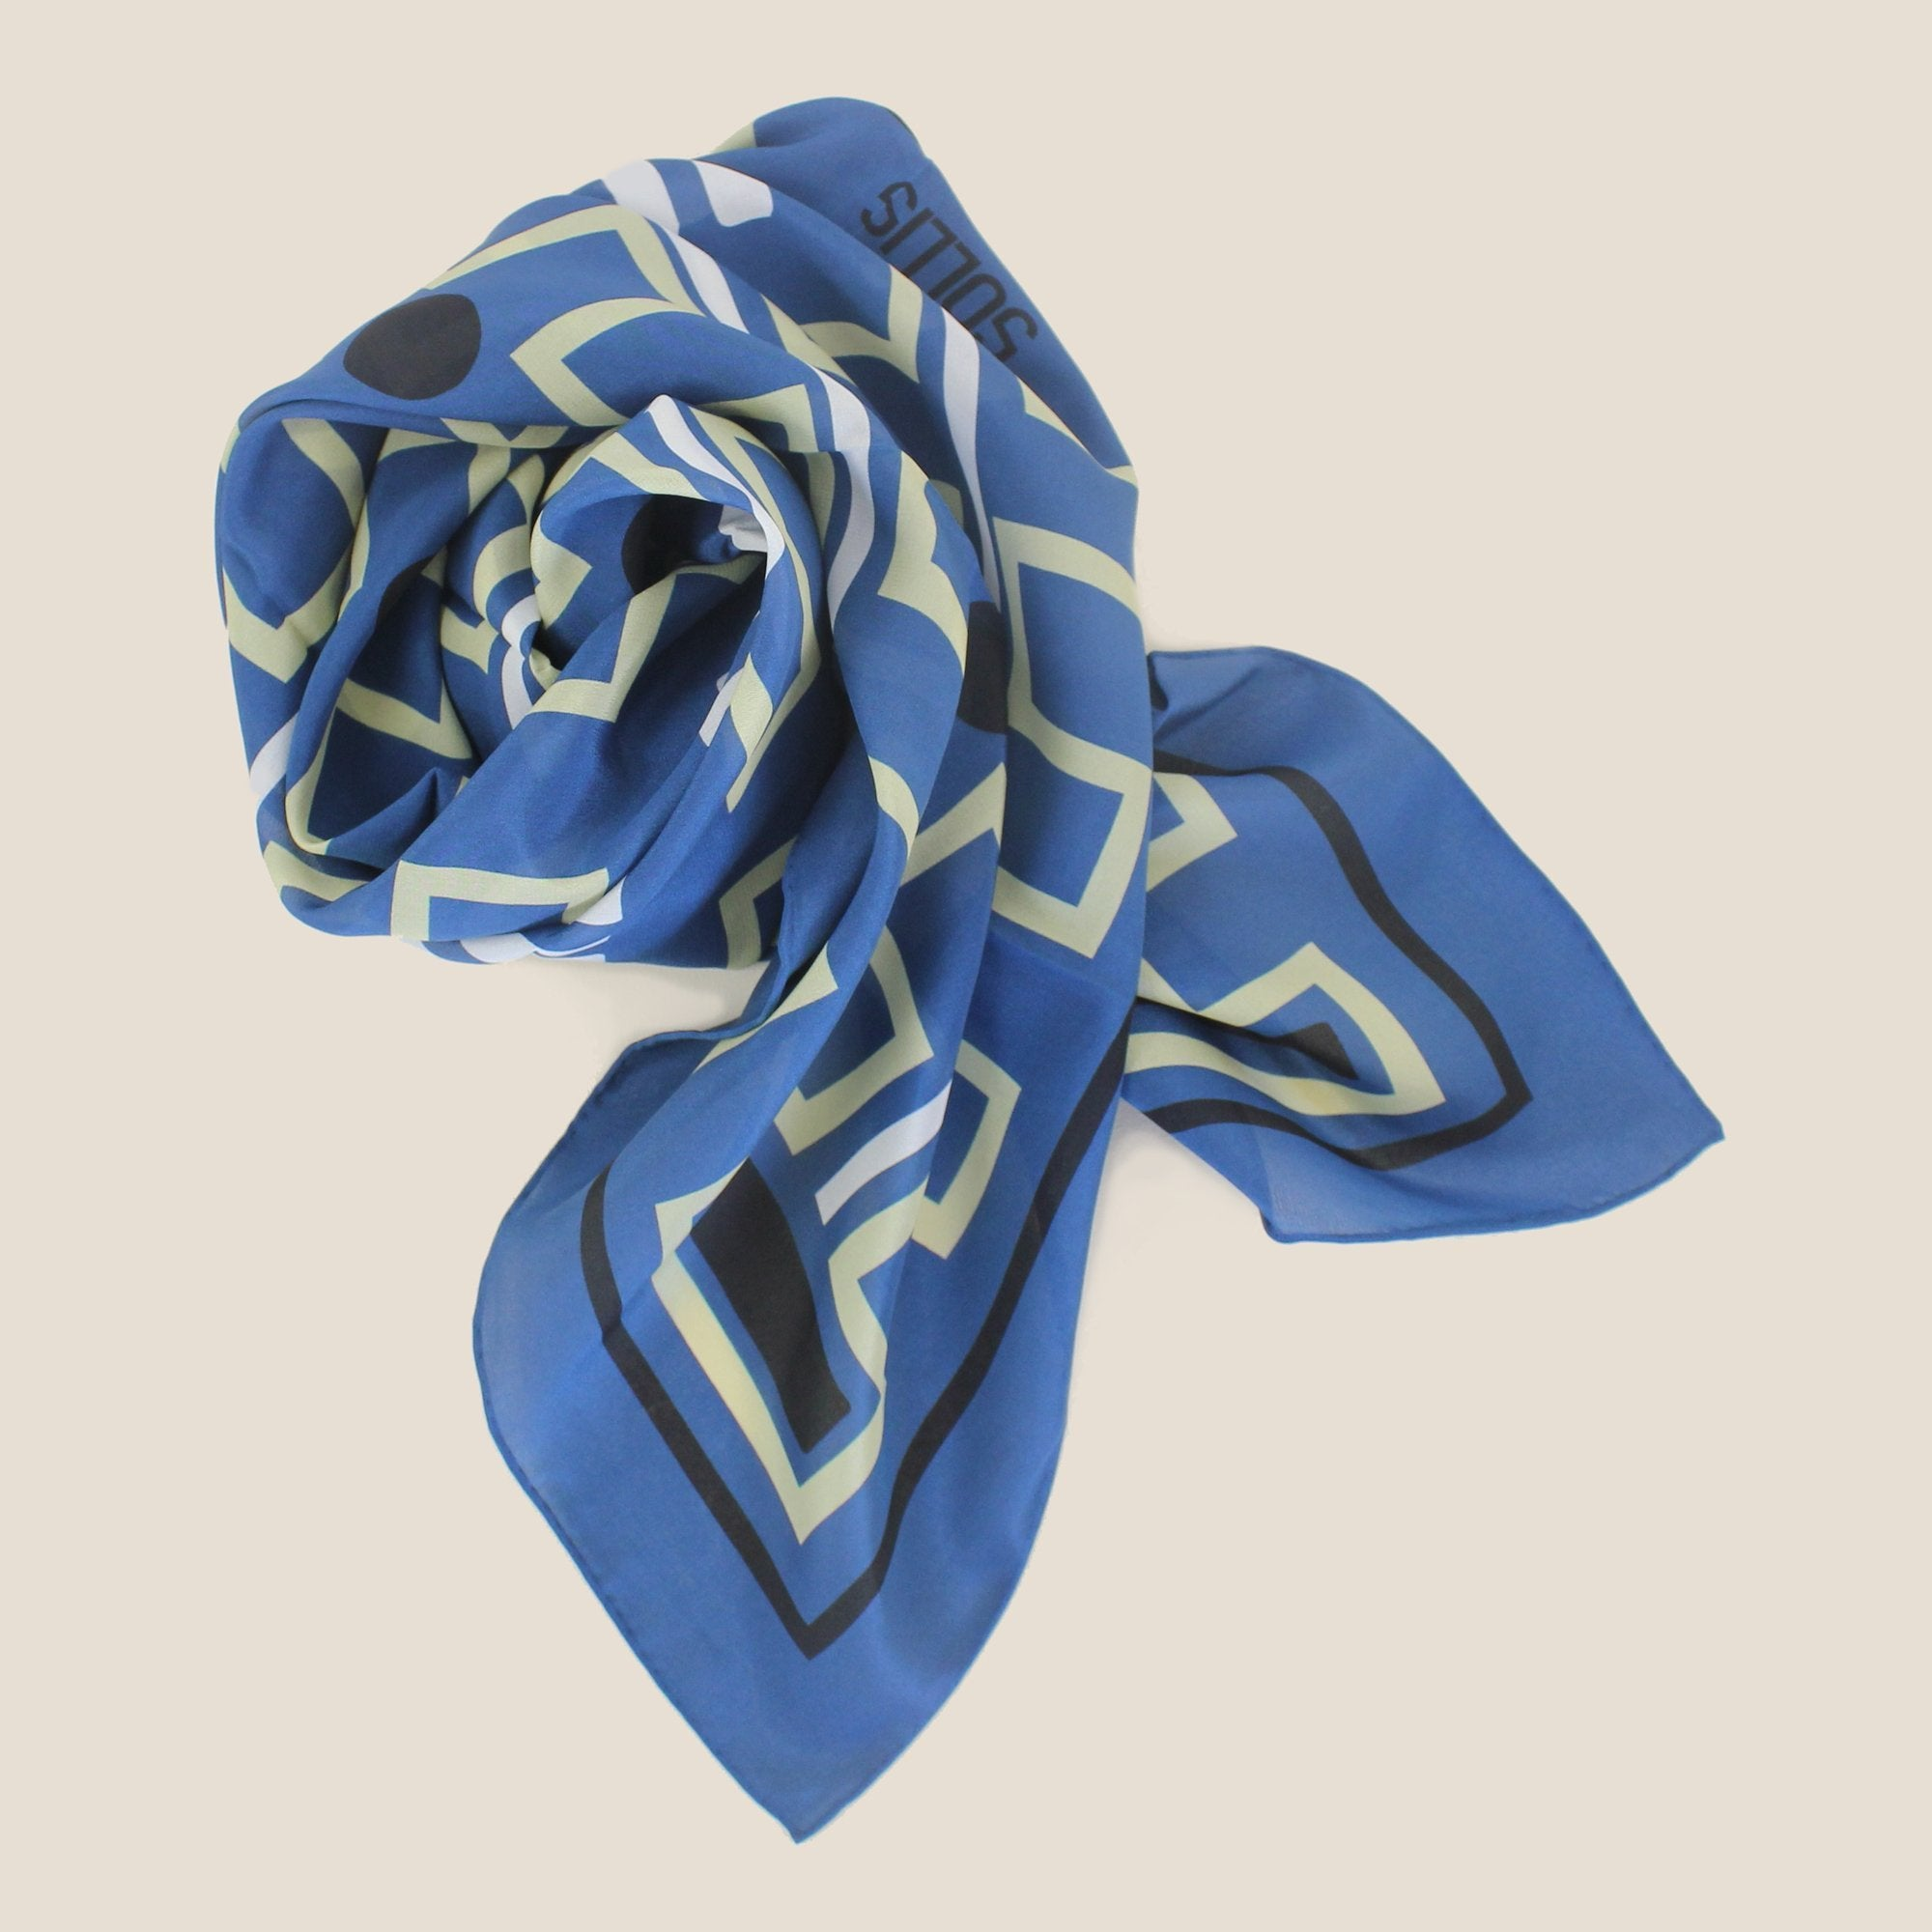 SILK SCARF - 'ZIG' design - 70% OFF